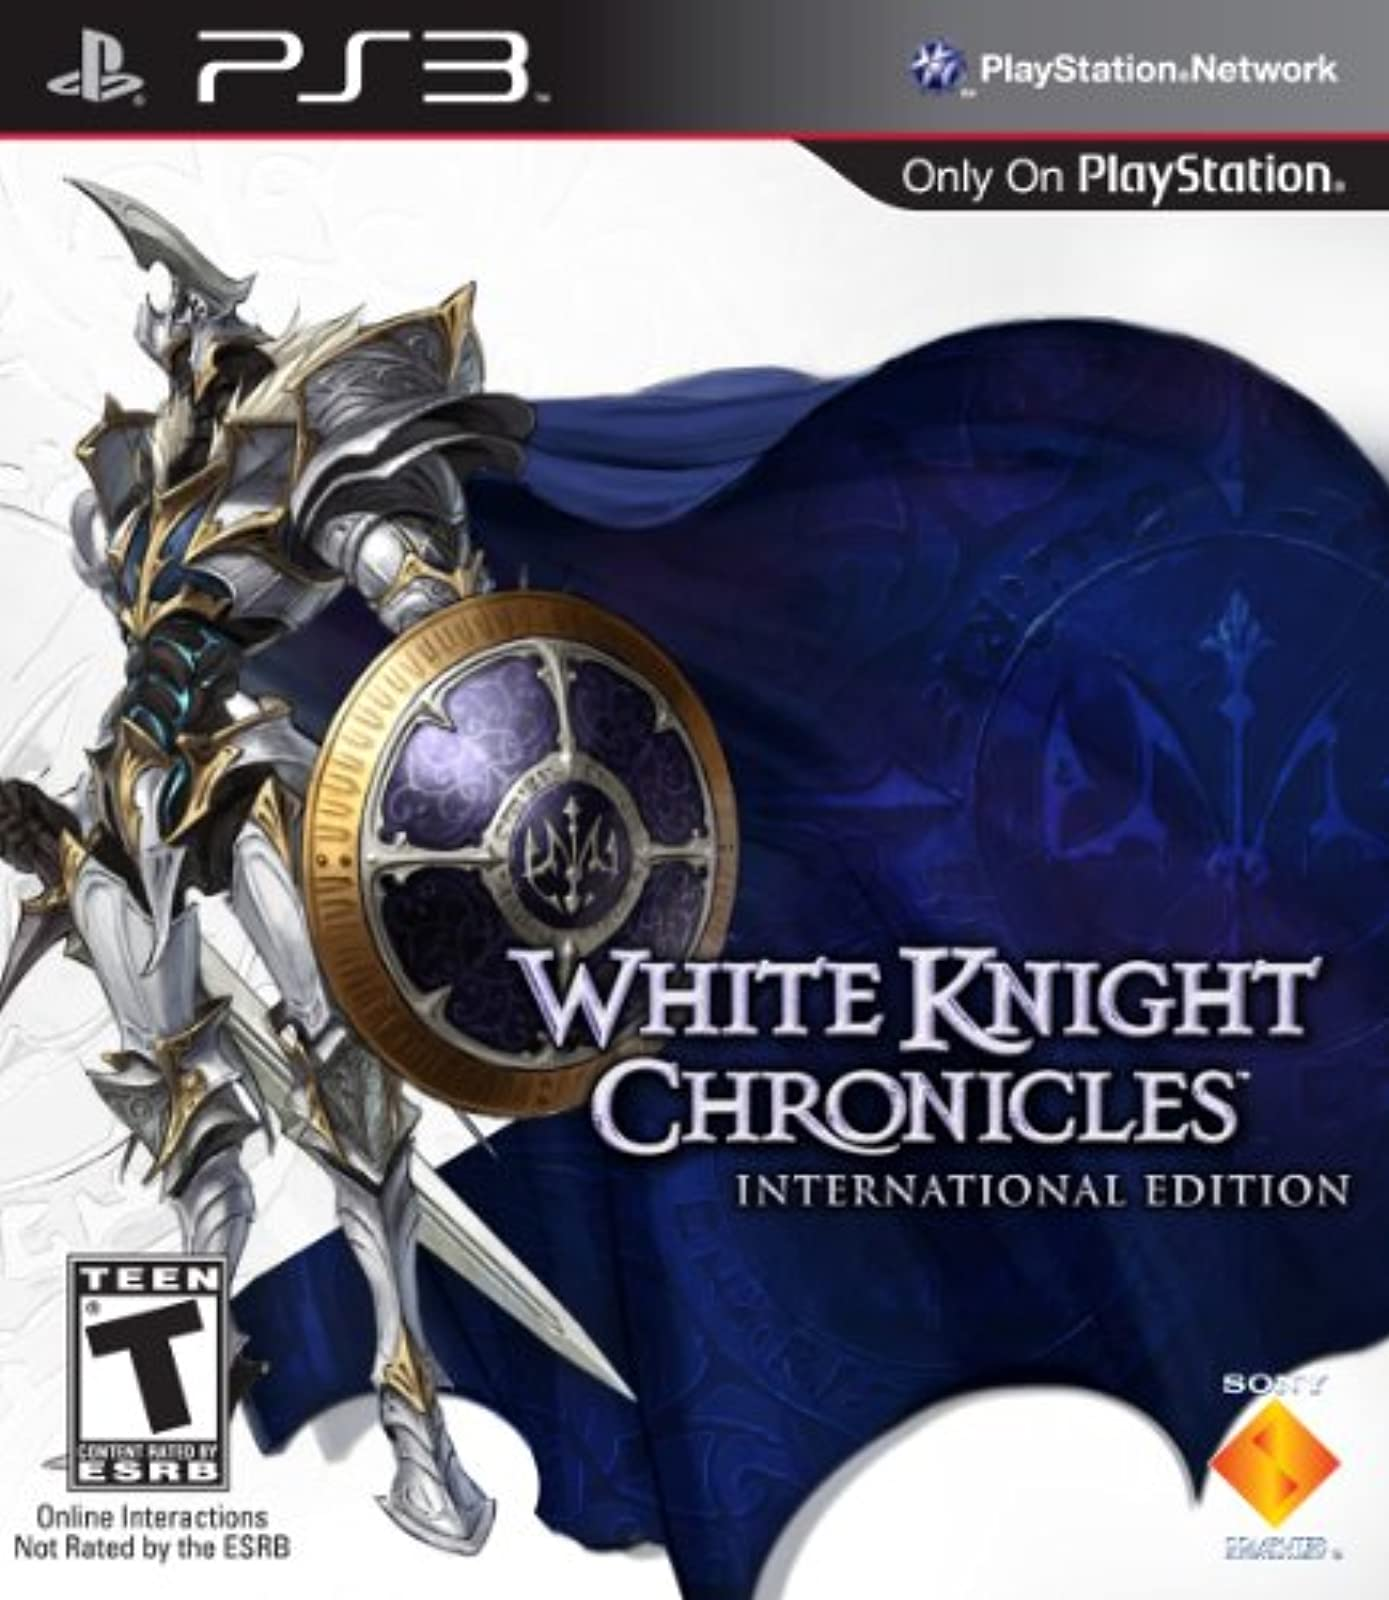 White Knight Chronicles International Edition For PlayStation 3 PS3 RPG